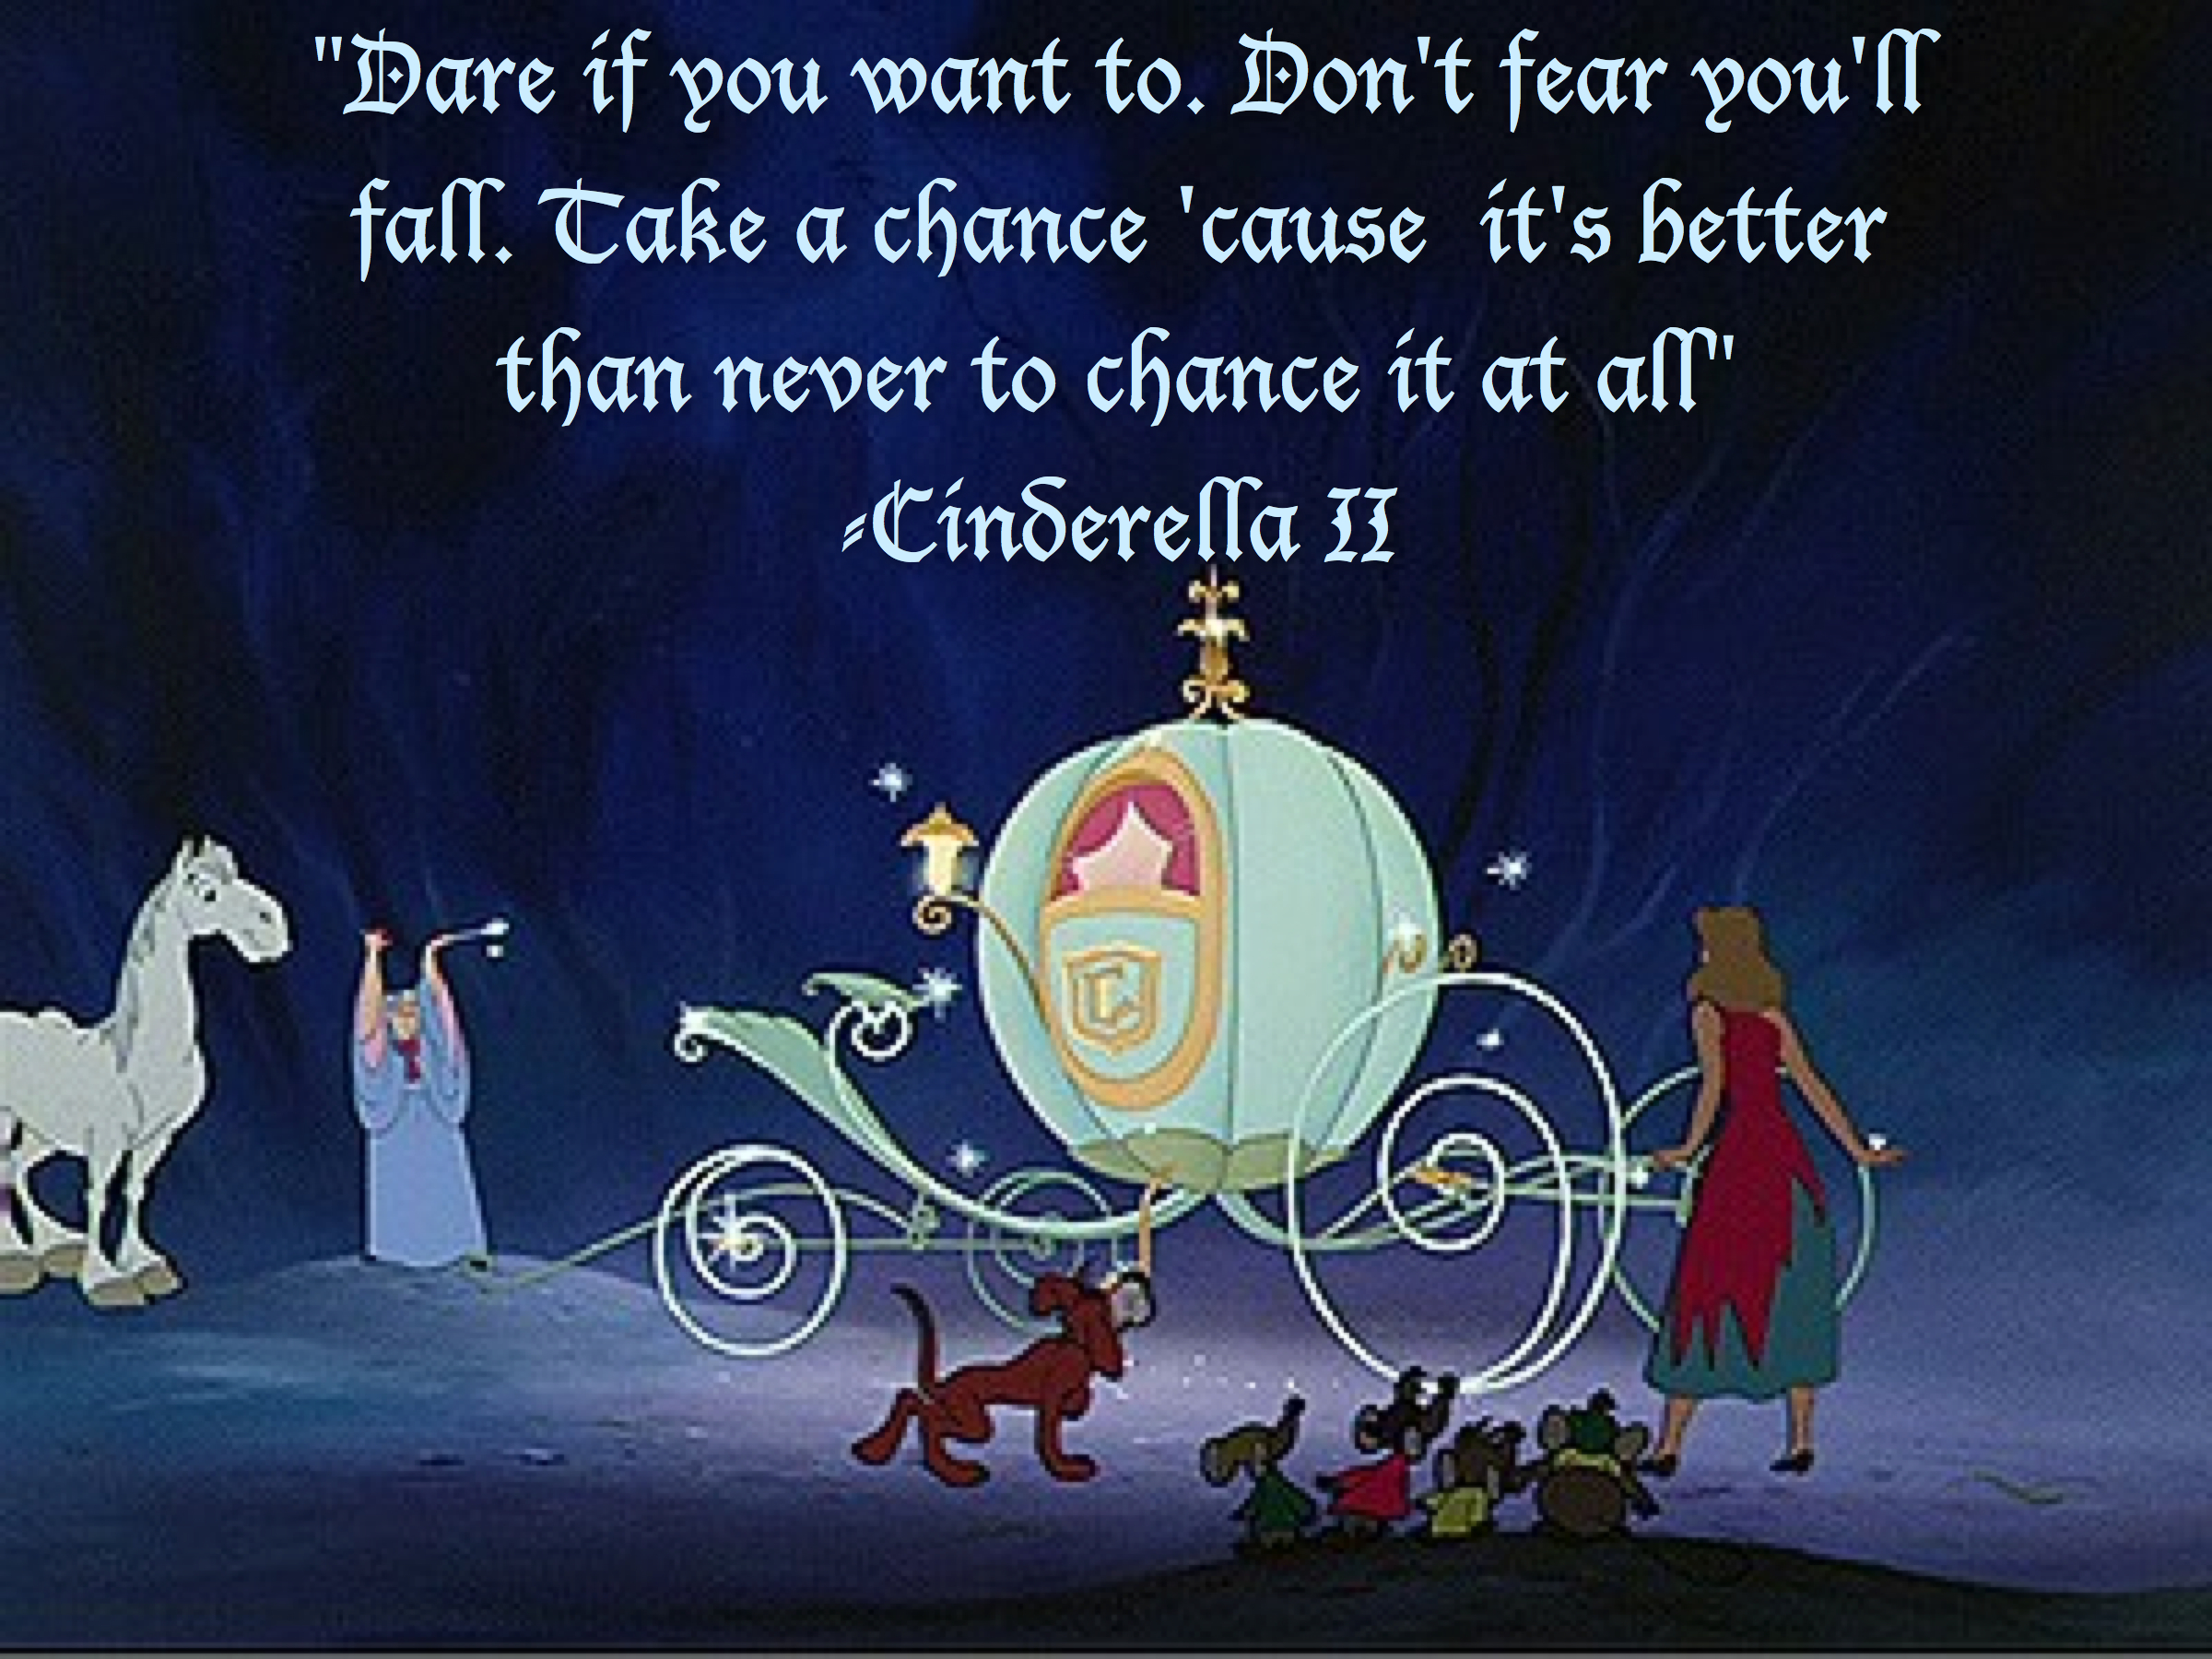 Comme cendrillon quotes